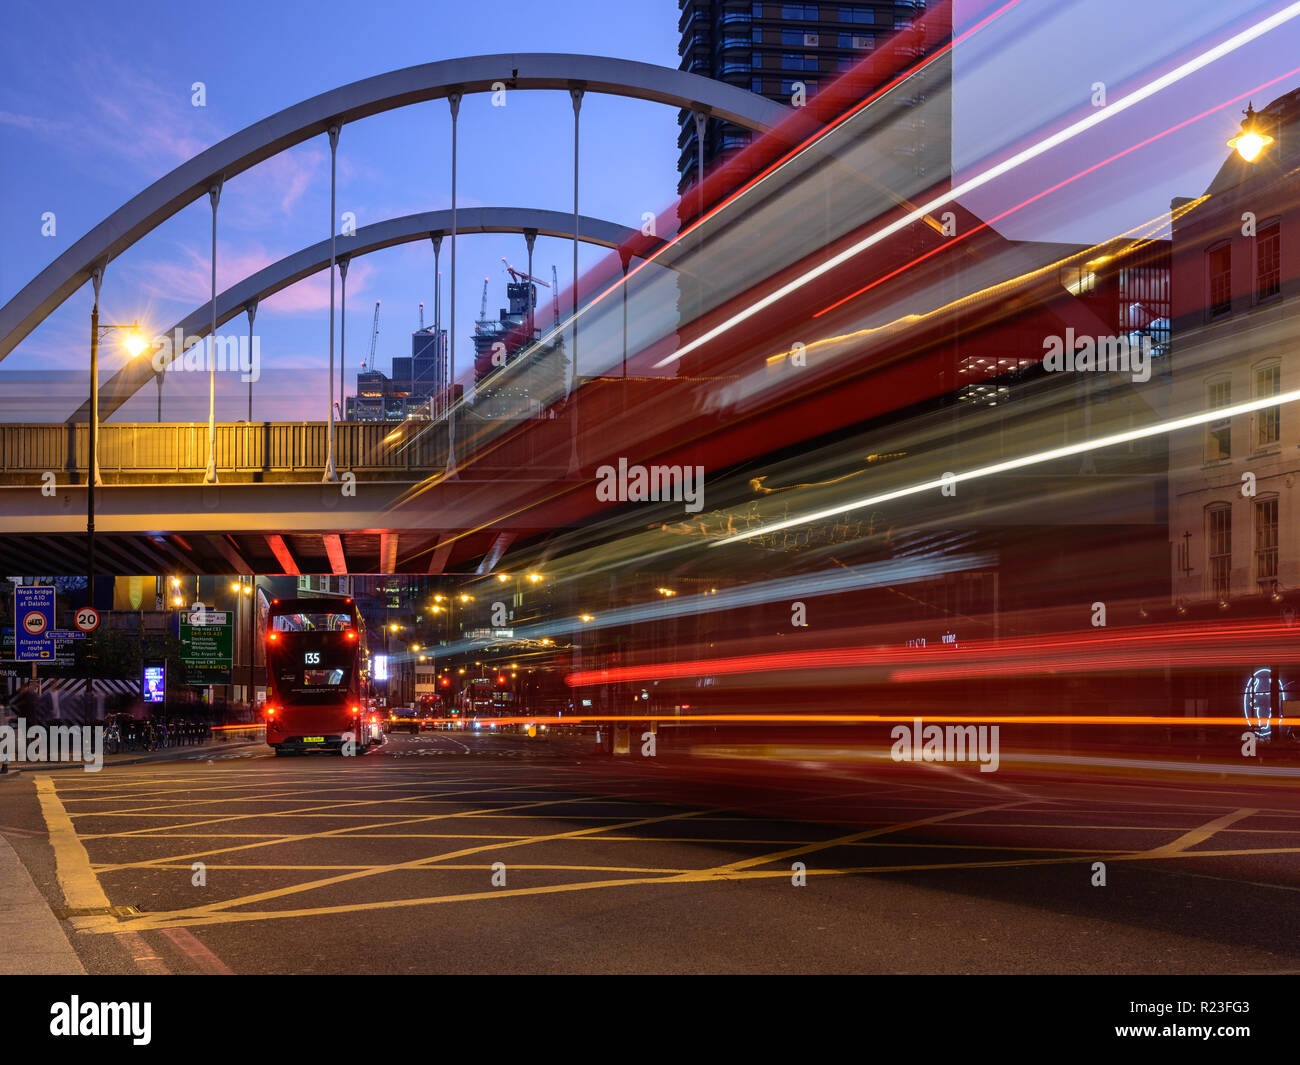 London, England, UK - October 20, 2018: Red double-decker buses leave light trails as they move along Shoreditch High Street, under London Overground' Stock Photo